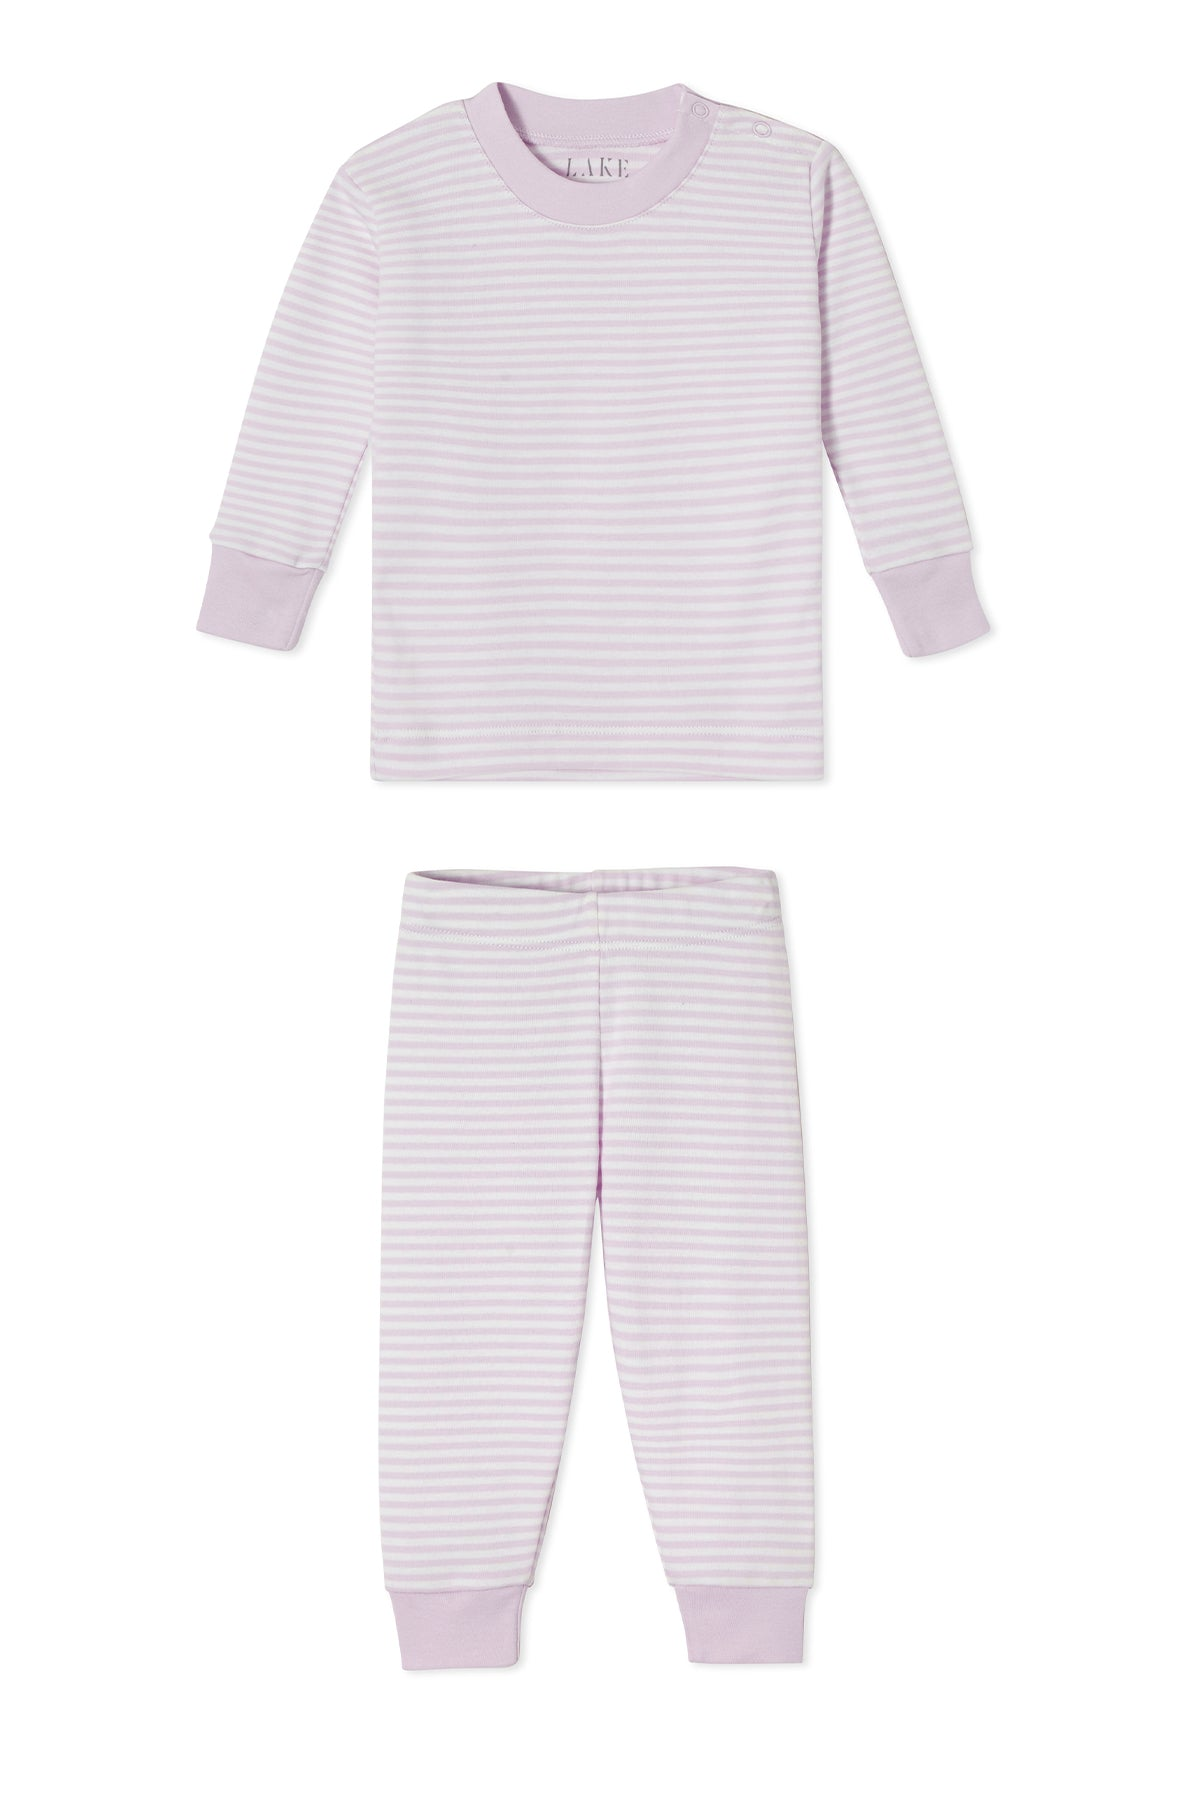 Baby Long-Long Set in Lavender